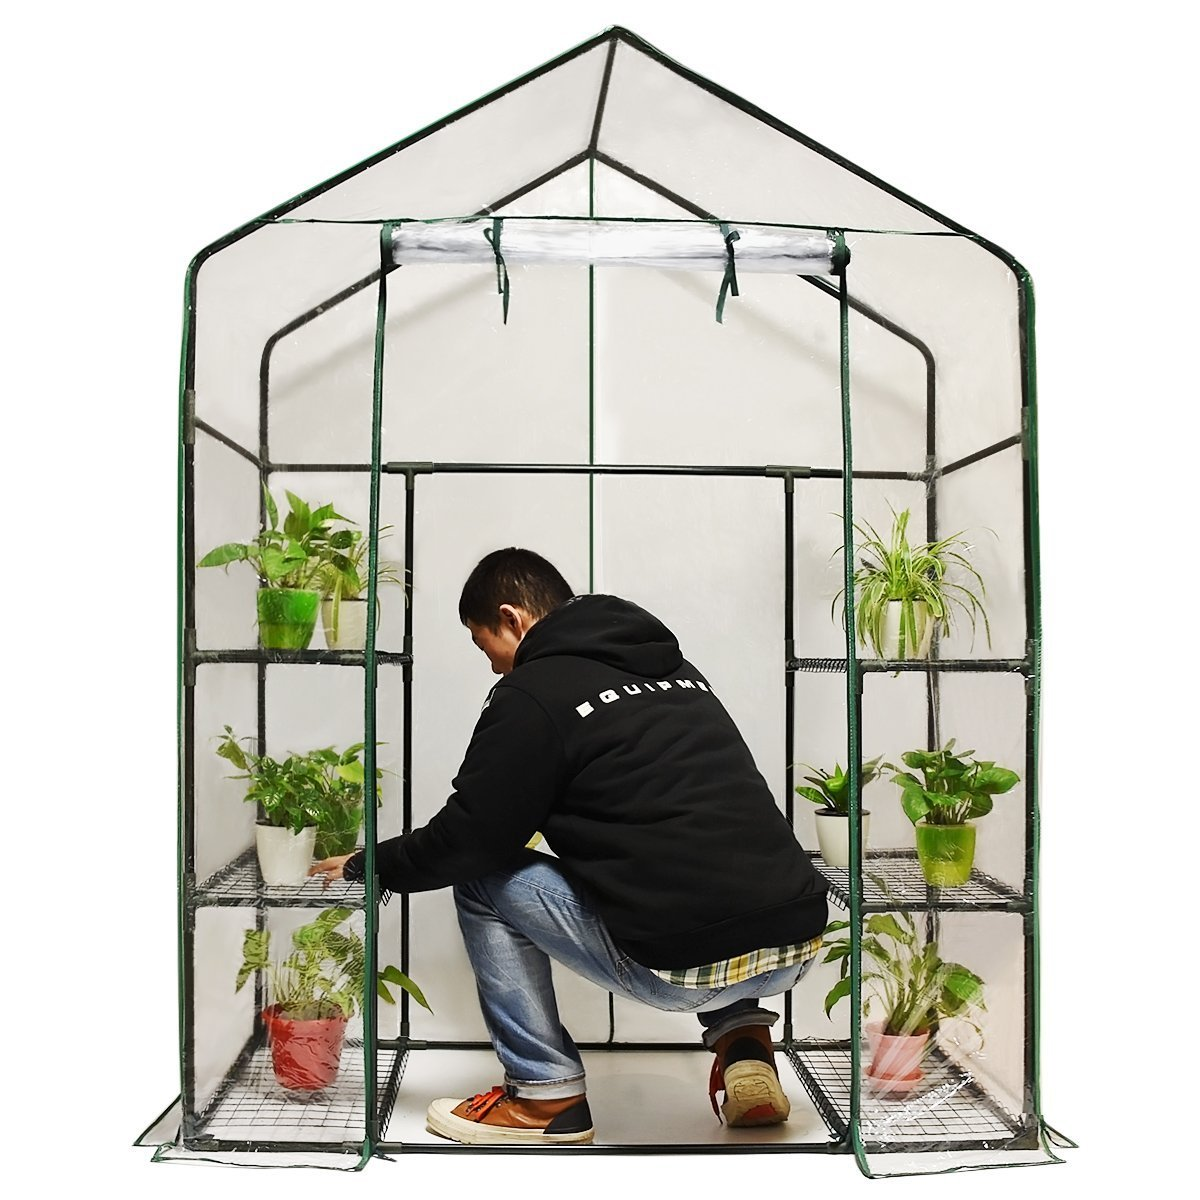 Quictent Greenhouse Mini Walk-in 3 tiers 6 shelves 102lbs Max Weight Capacity Portable Plant Garden Outdoor Green House 56''x29''x77'' by Quictent